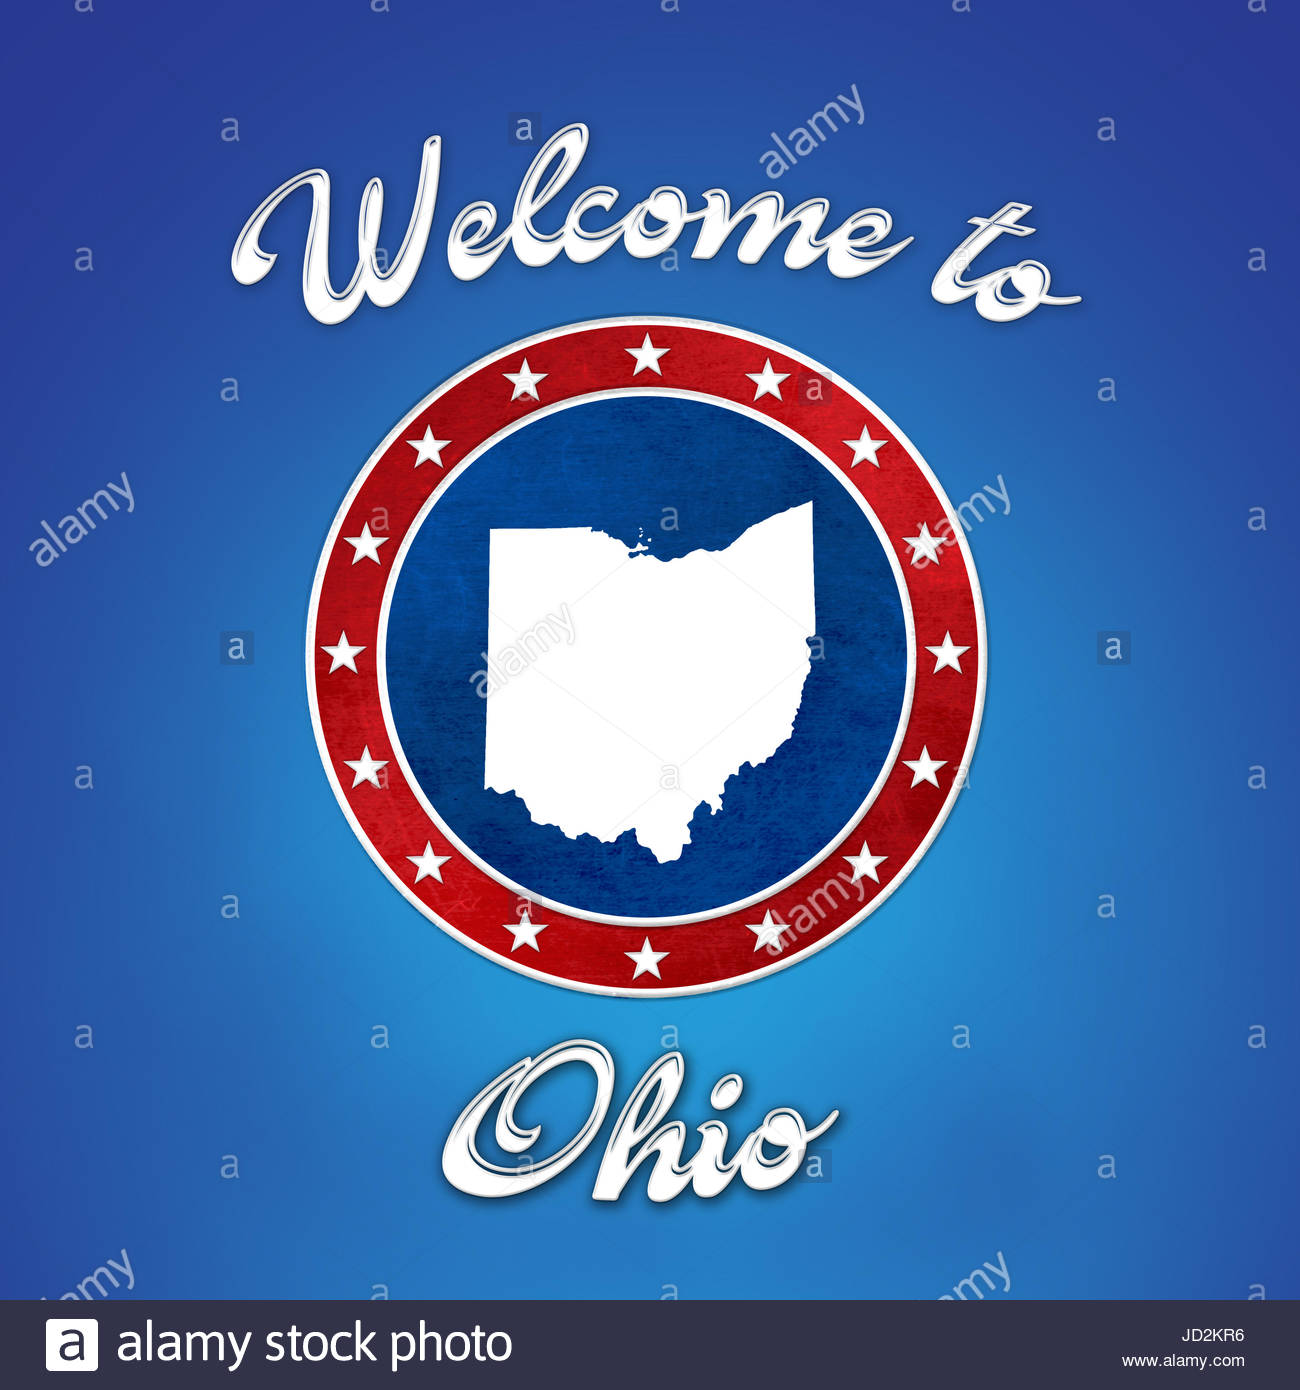 Welcome to Ohio - Stock Image